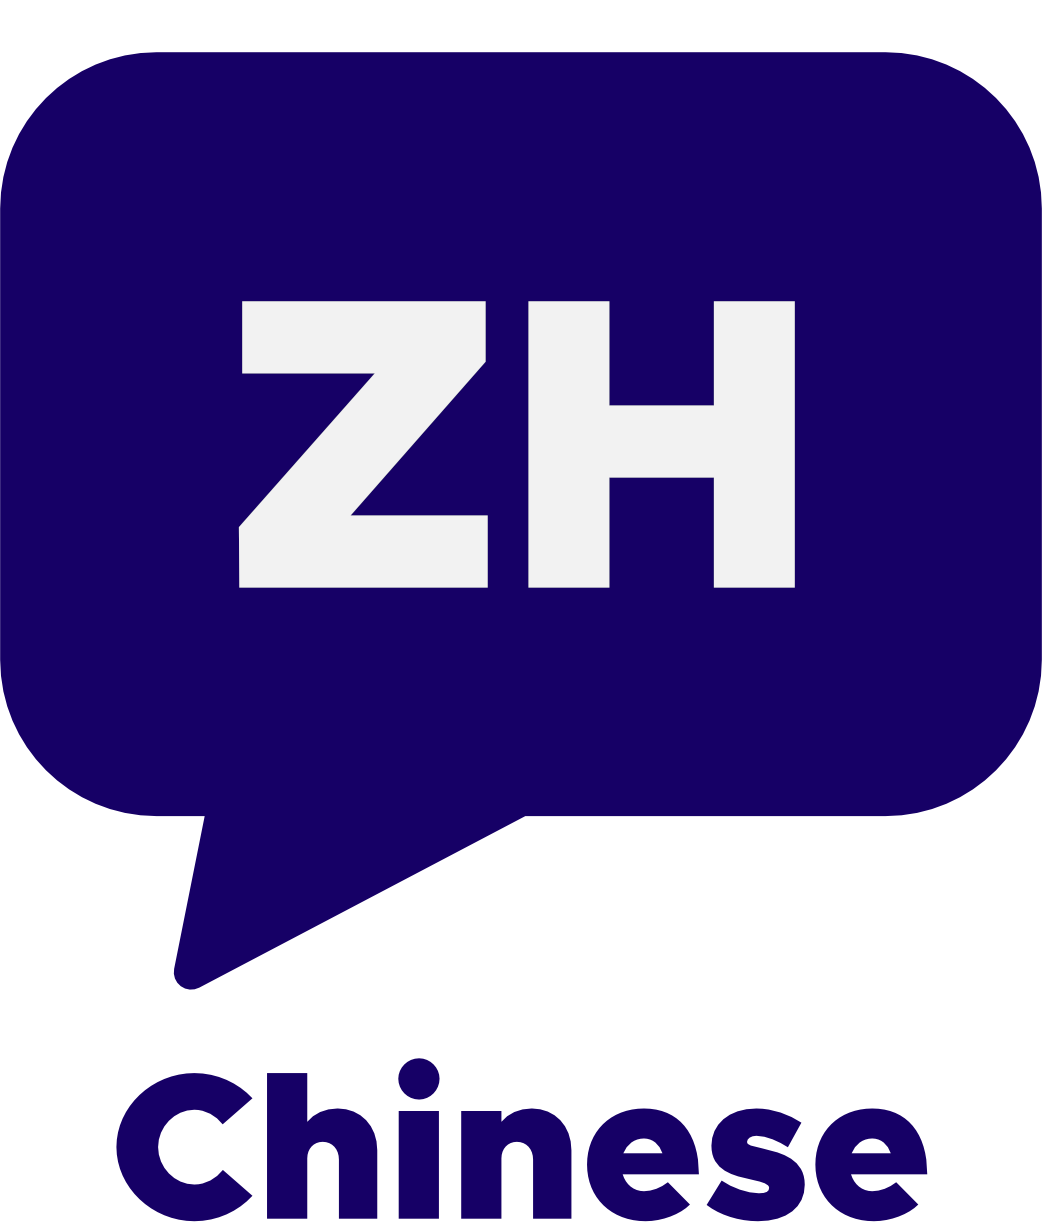 Sygmatic Chinese Mandarin Language - Learn a language through practical, everyday topics via immersive videos of native speakers